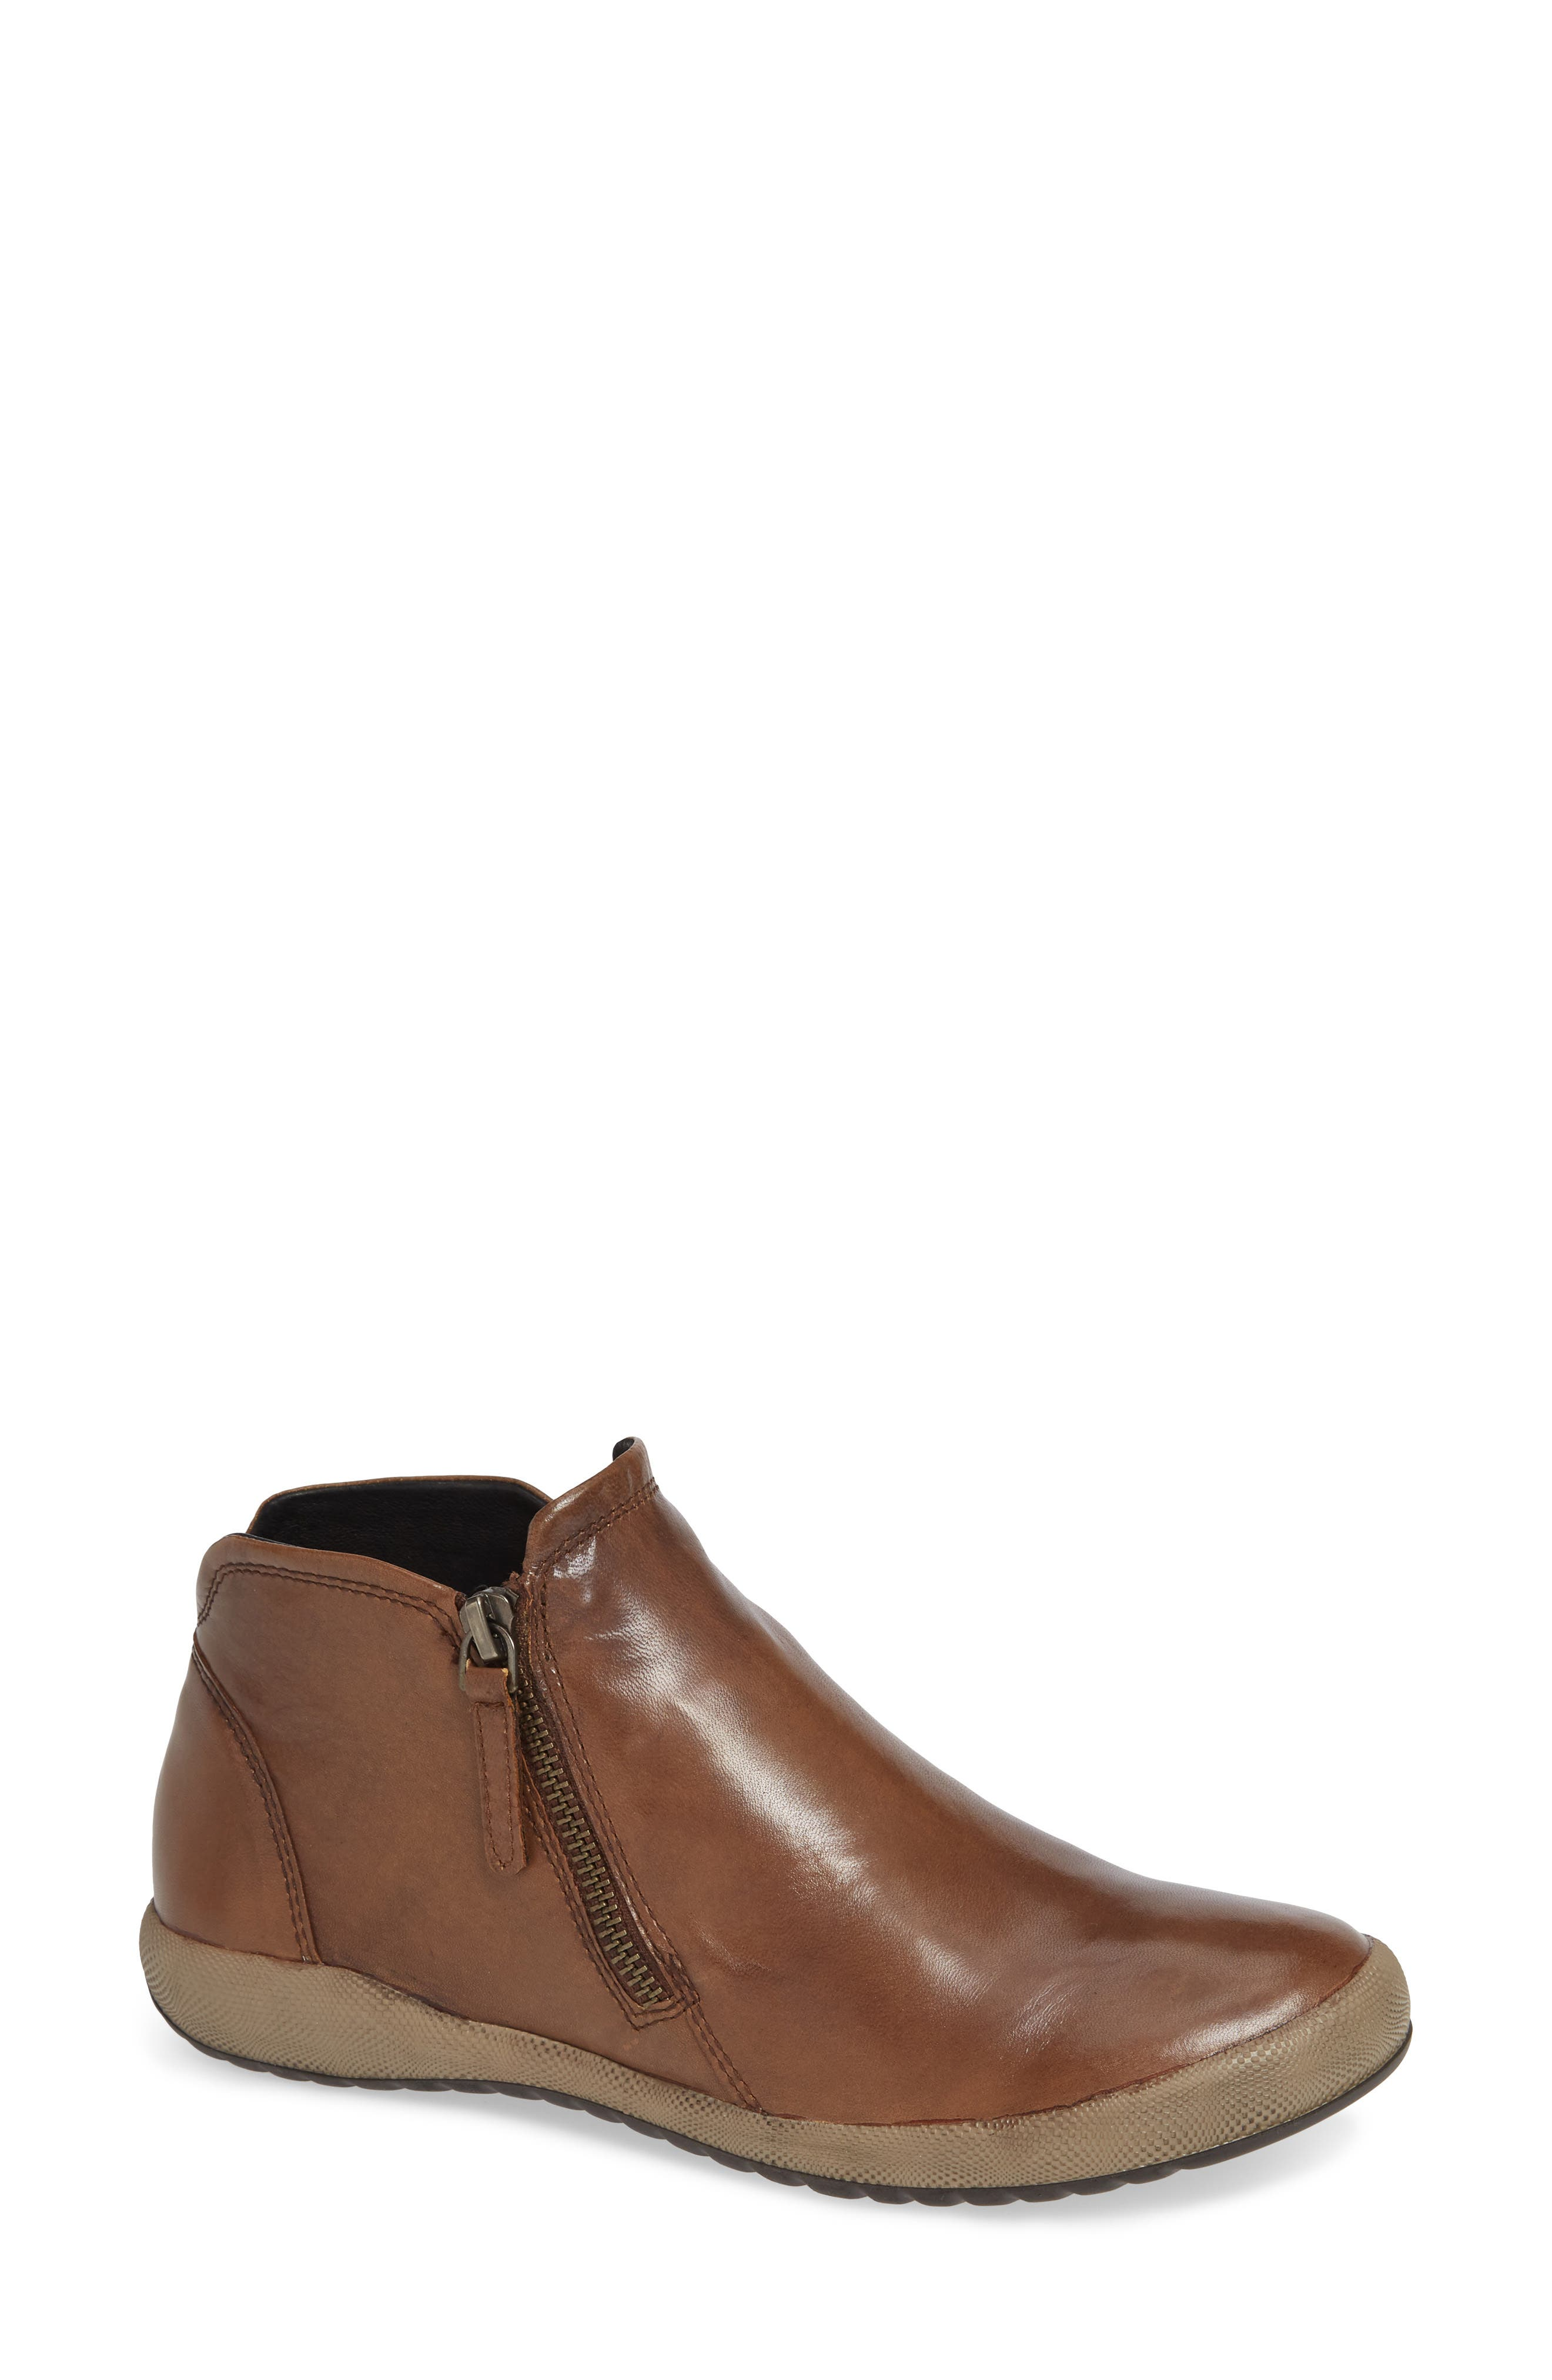 Cordoba 14 Bootie,                             Main thumbnail 1, color,                             BEIGE GLOVE LEATHER